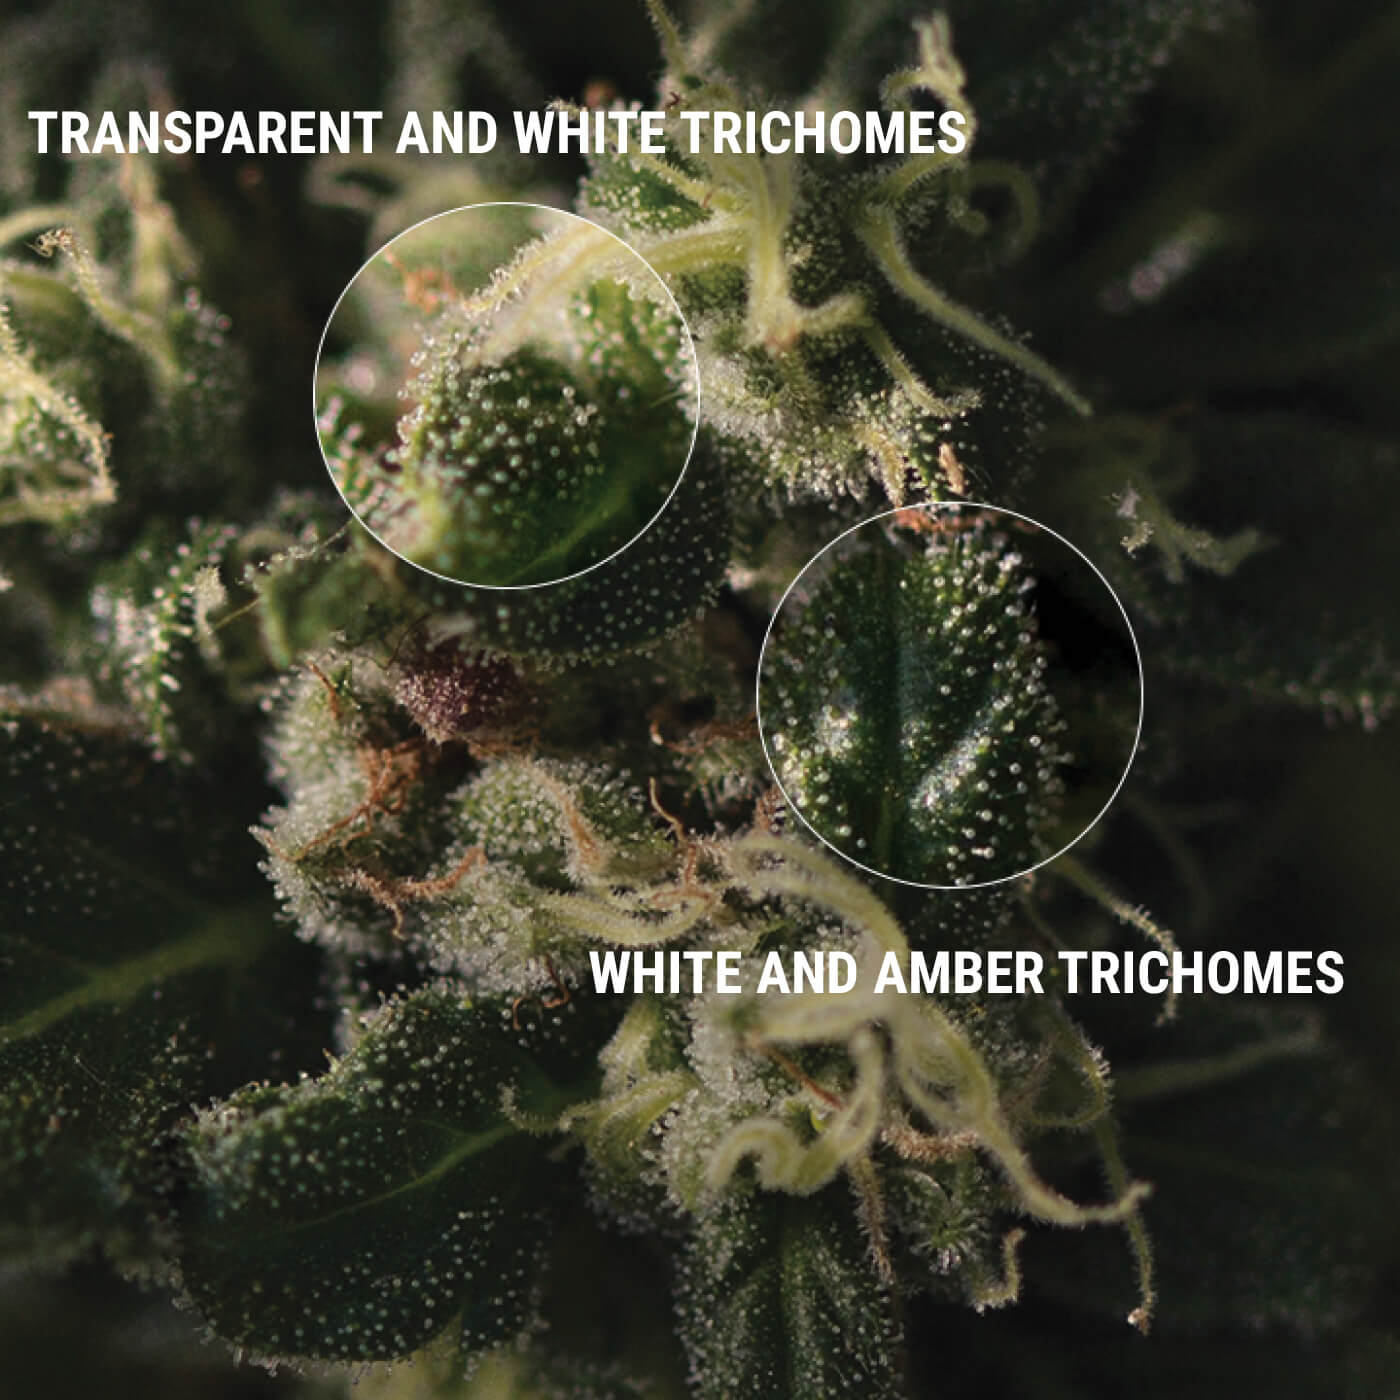 HOW TO INSPECT YOUR TRICHOMES